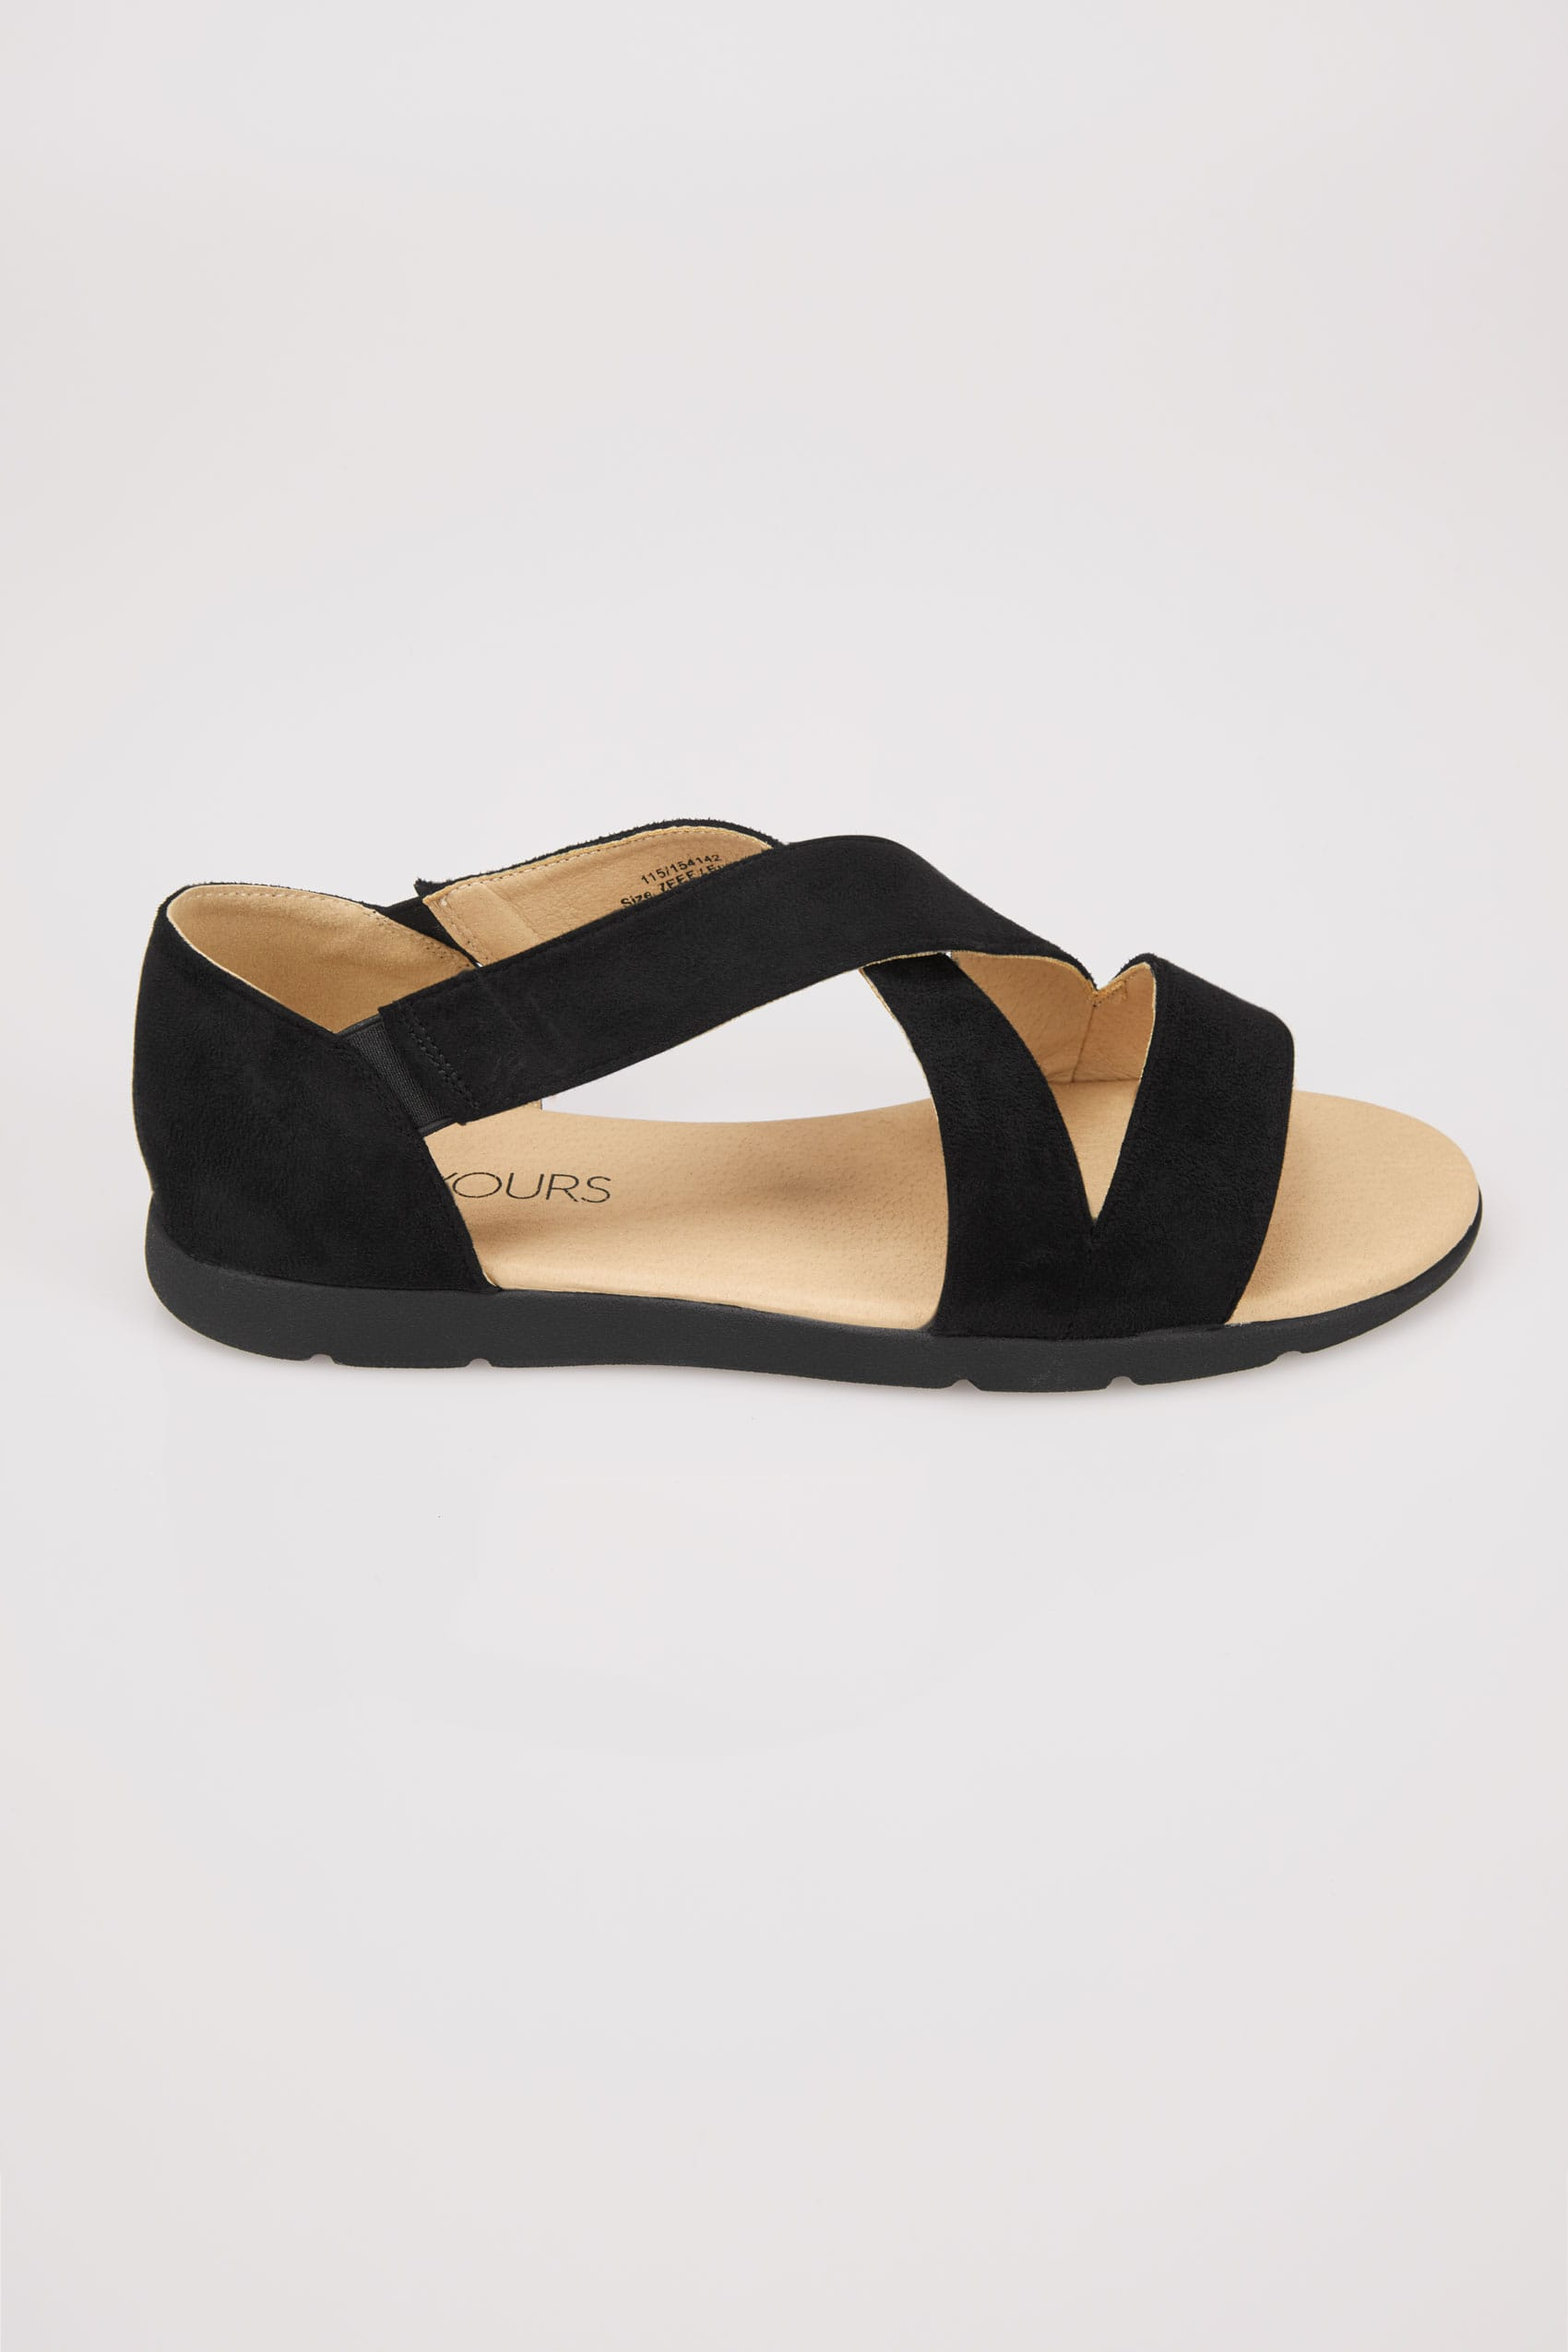 Black cross over strap sandals in true eee fit for Buy here pay later